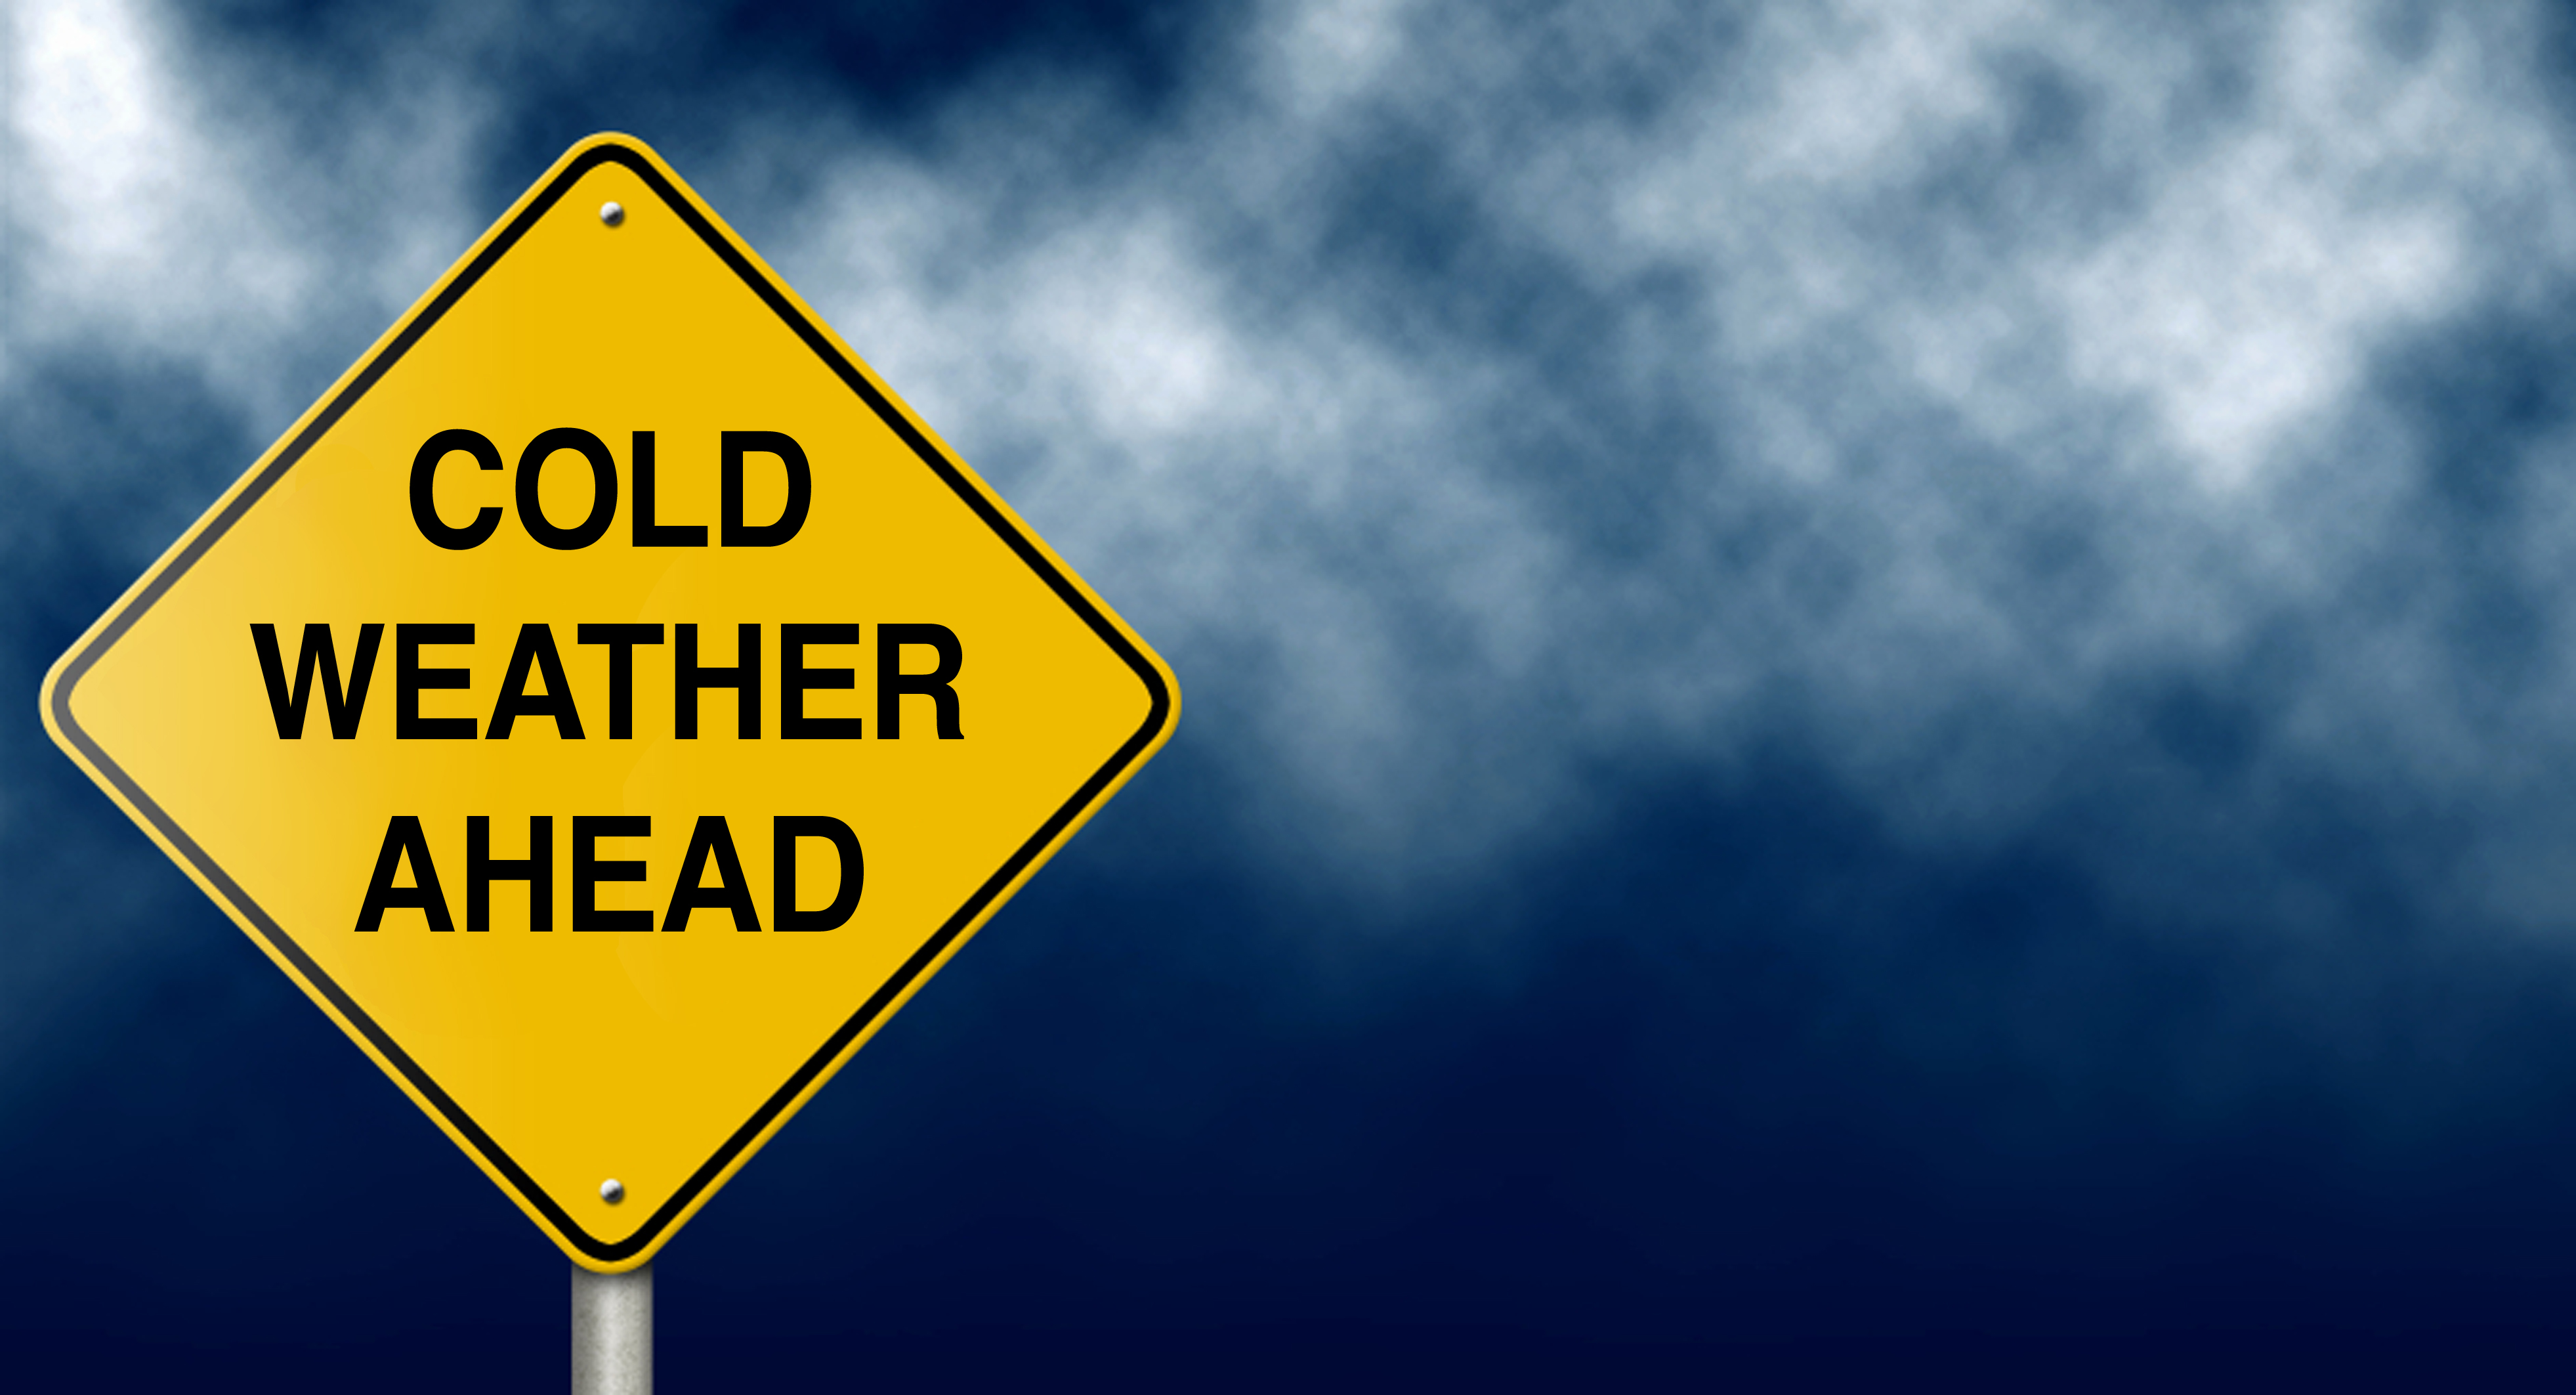 cold-weather-ahead_road-sign_9051379